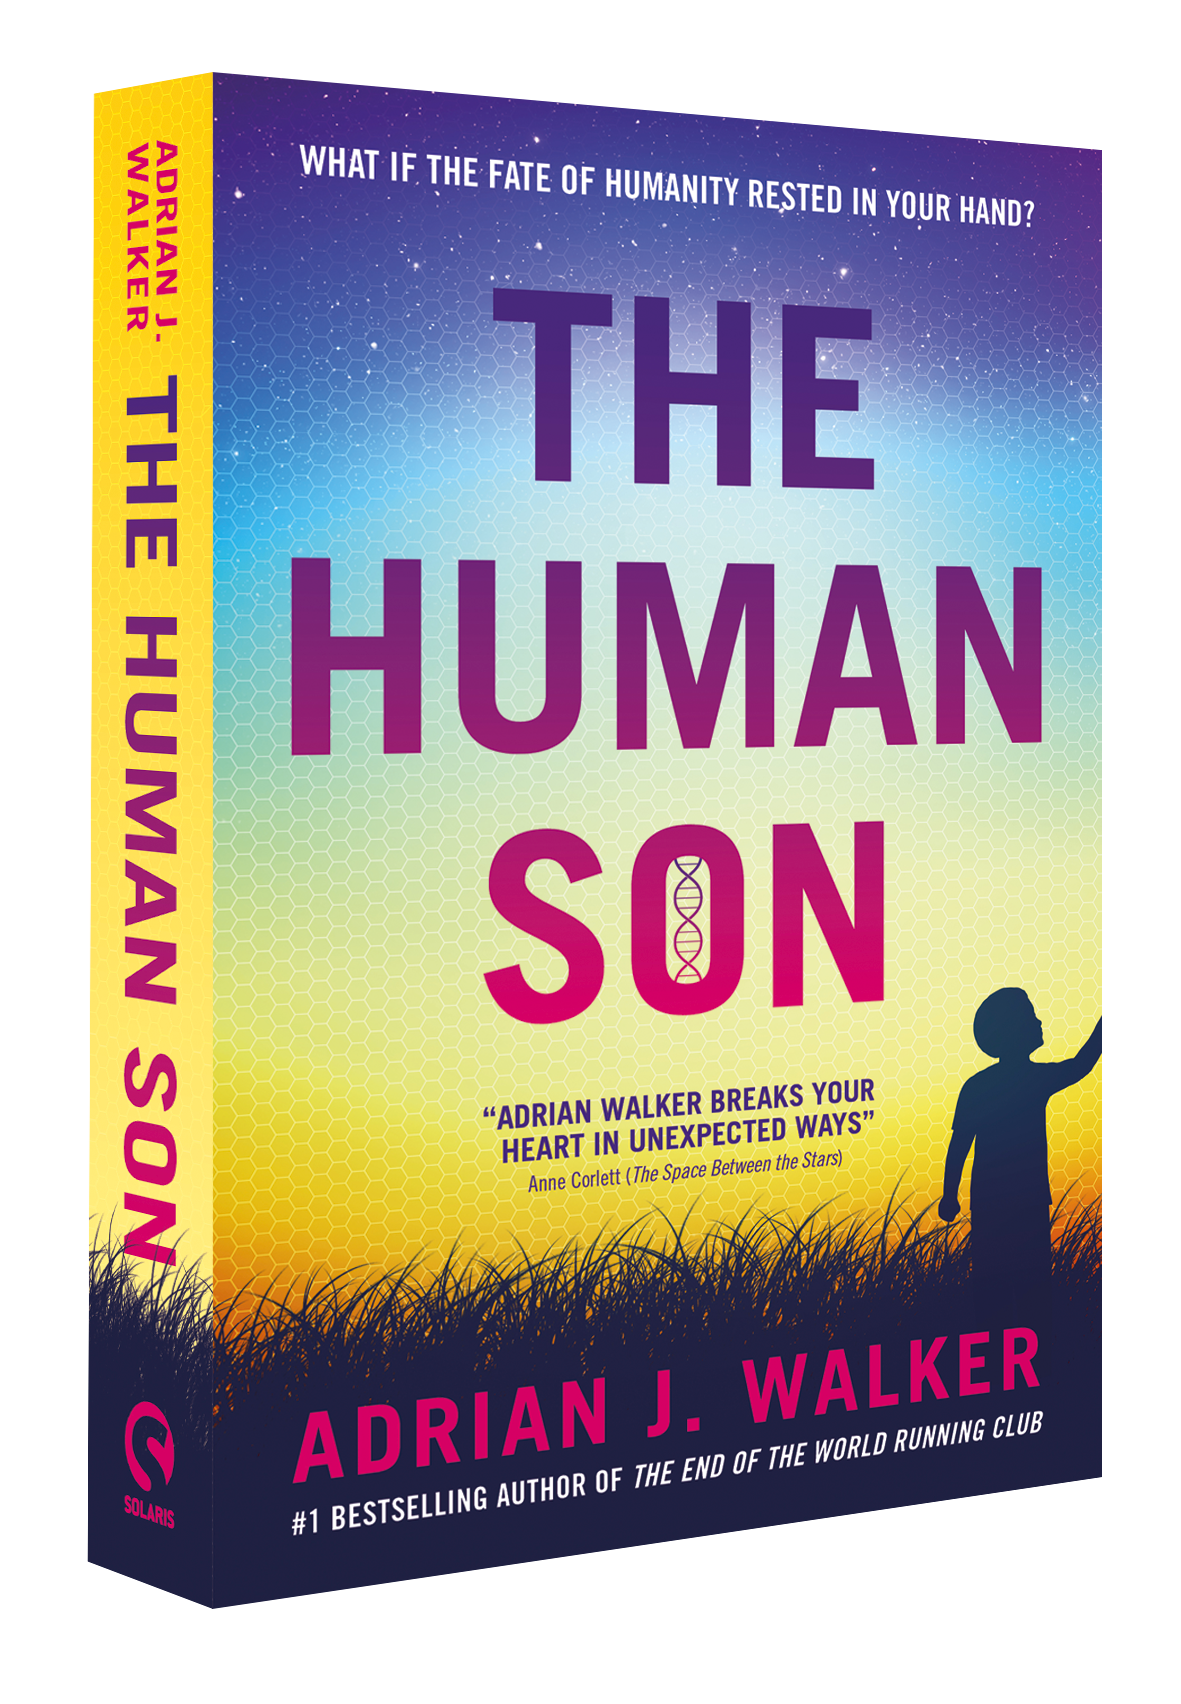 The Human Son review: Humanity and parental connections explored in new sci-fi novel